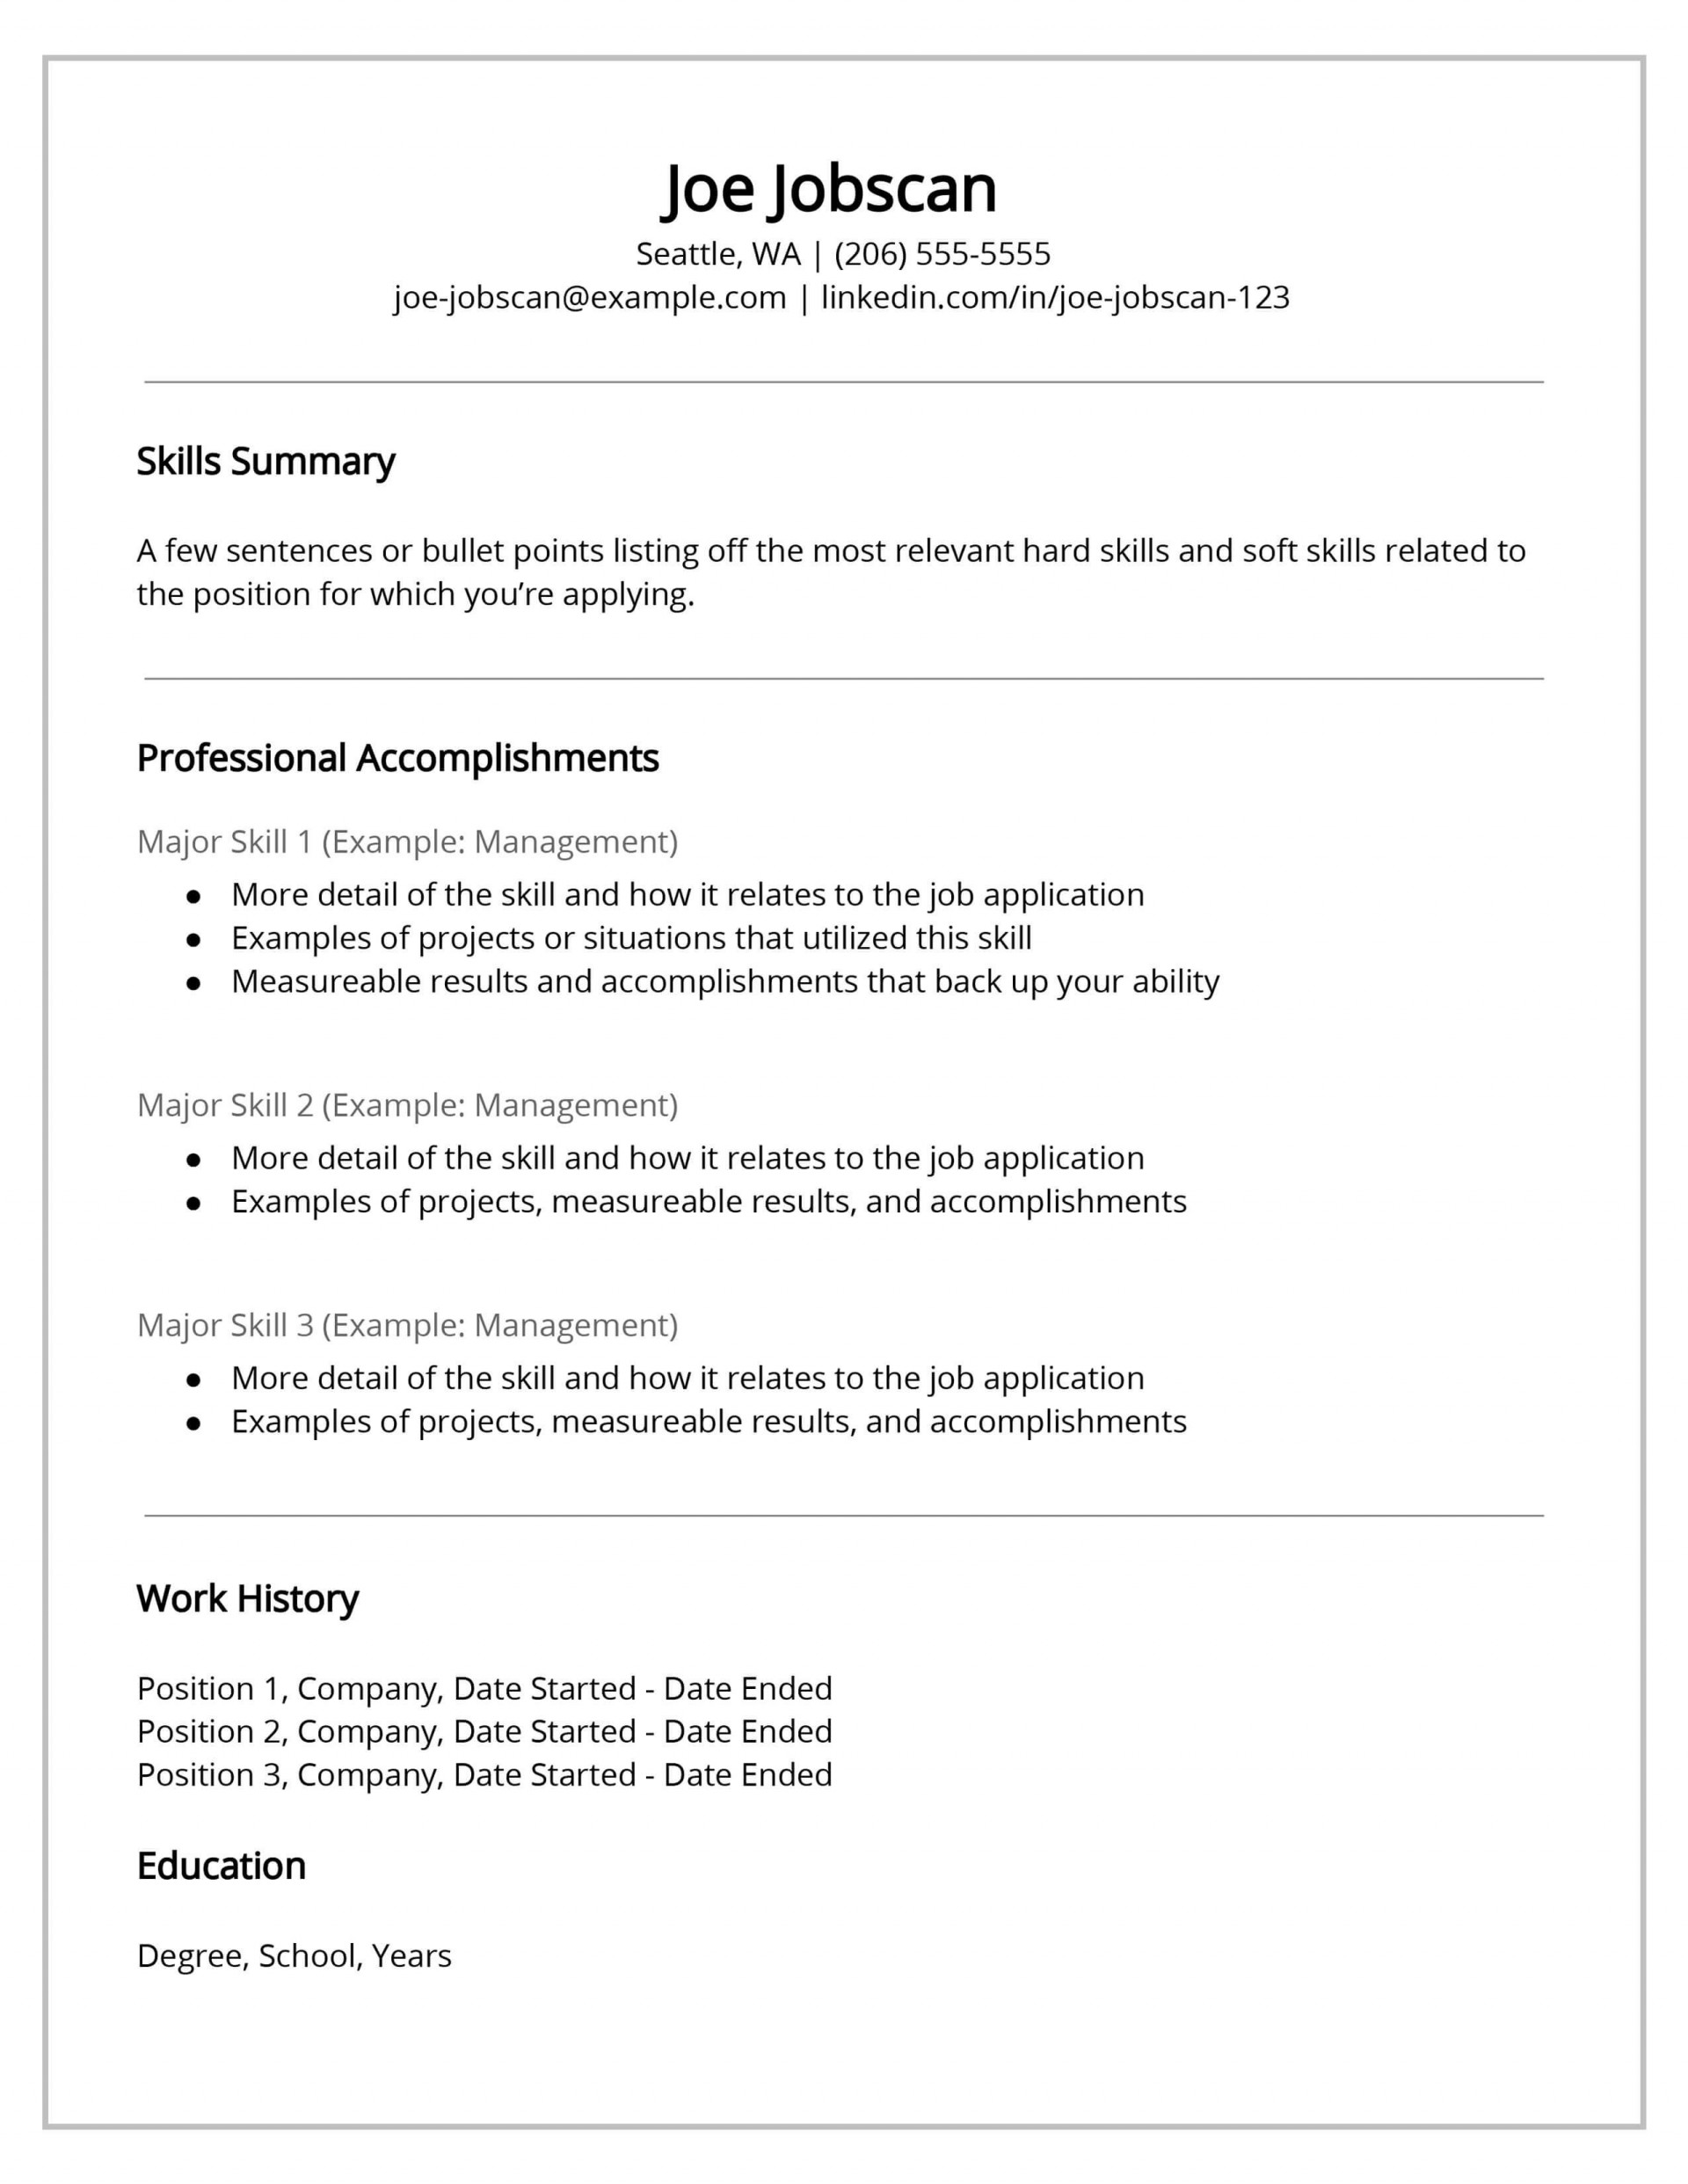 005 Impressive Simple Job Resume Template Concept  Templates Example Download1920